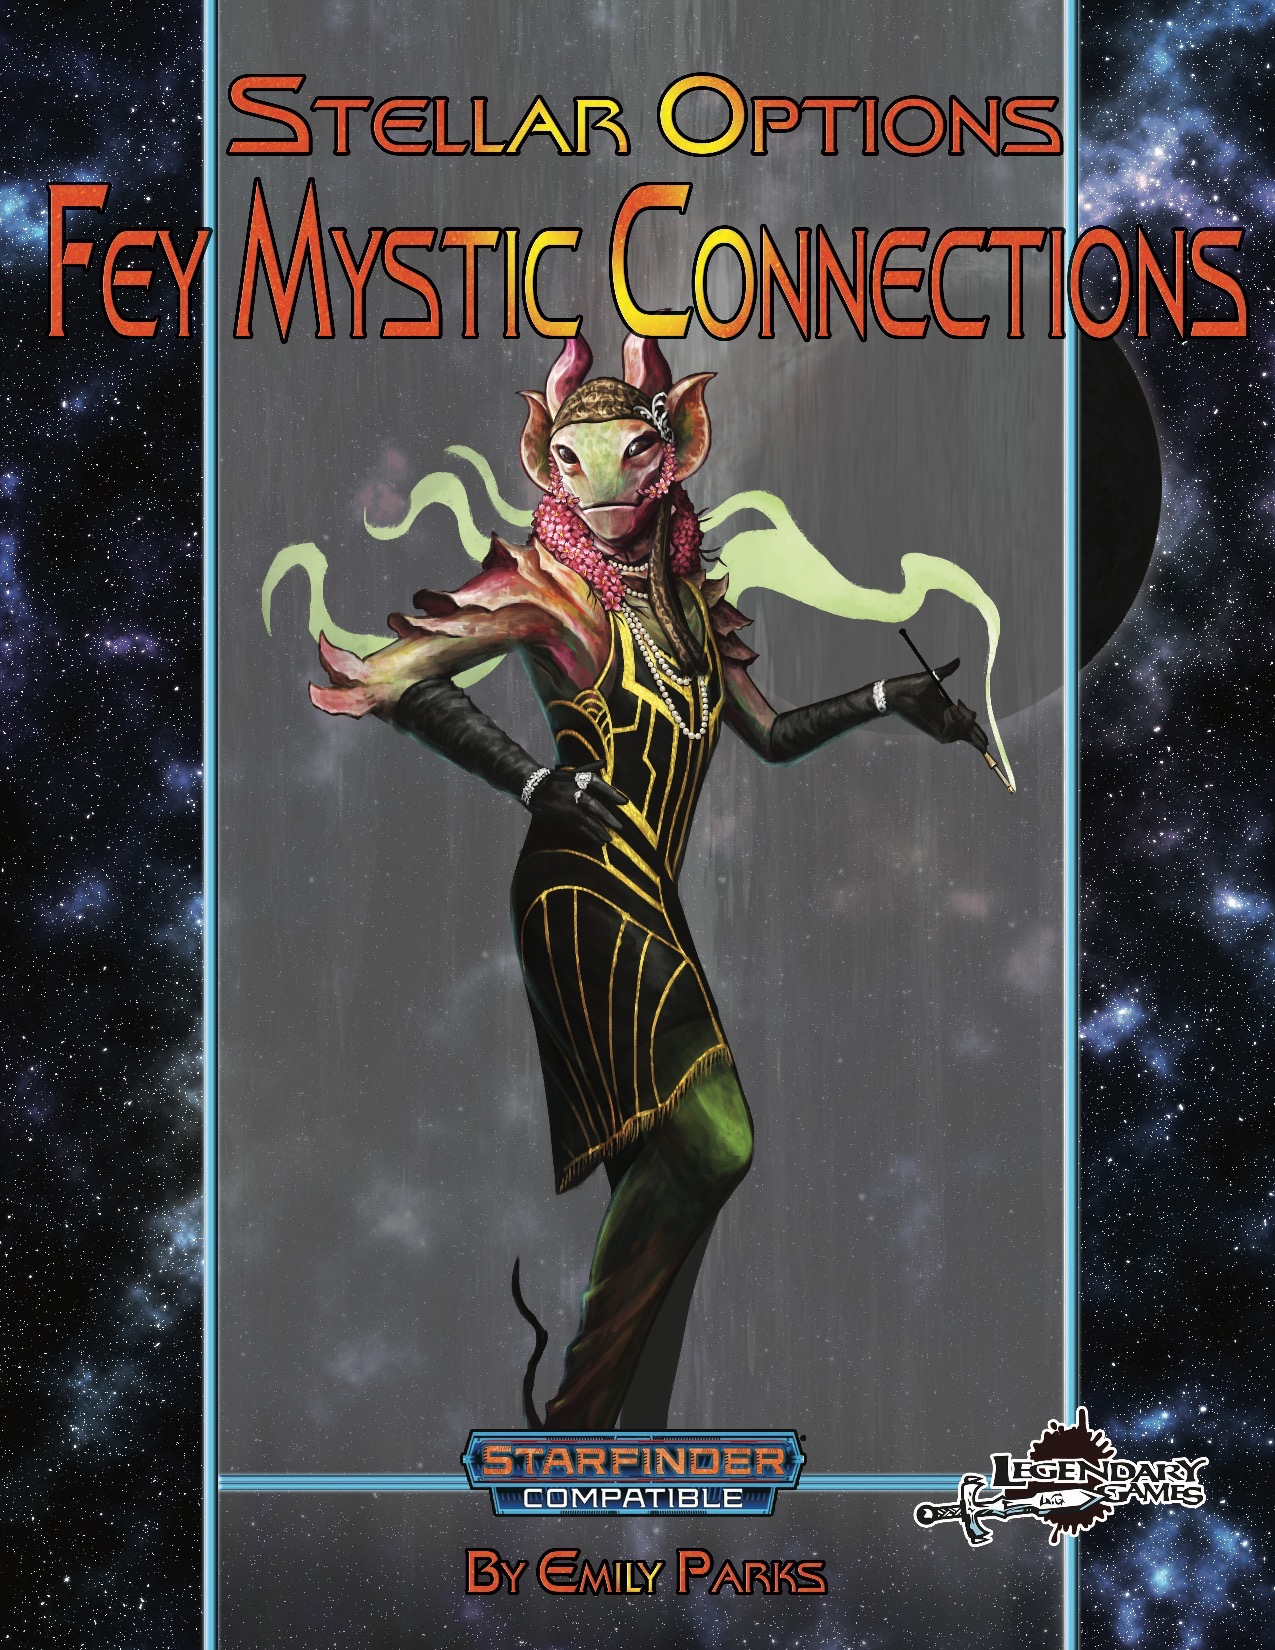 Stellar Options #6: Fey Mystic Connections (SFRPG) PDF: an alien stands in a beaded dress with elbow length gloves and a long cigarette holder in one hand